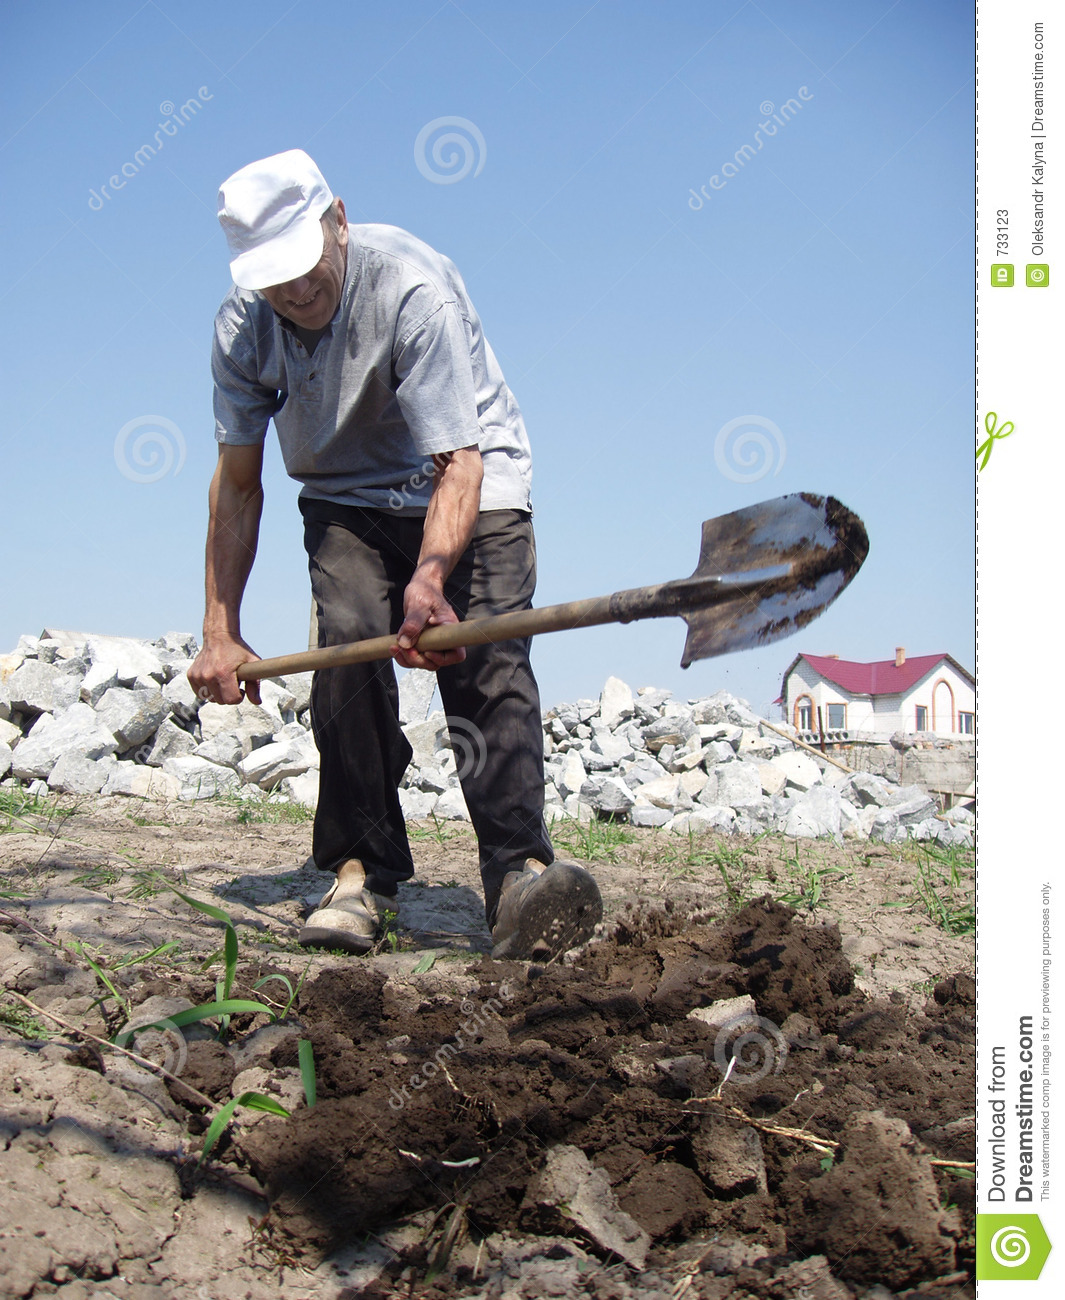 Man digging stock photos image 733123 for Digging ground dream meaning